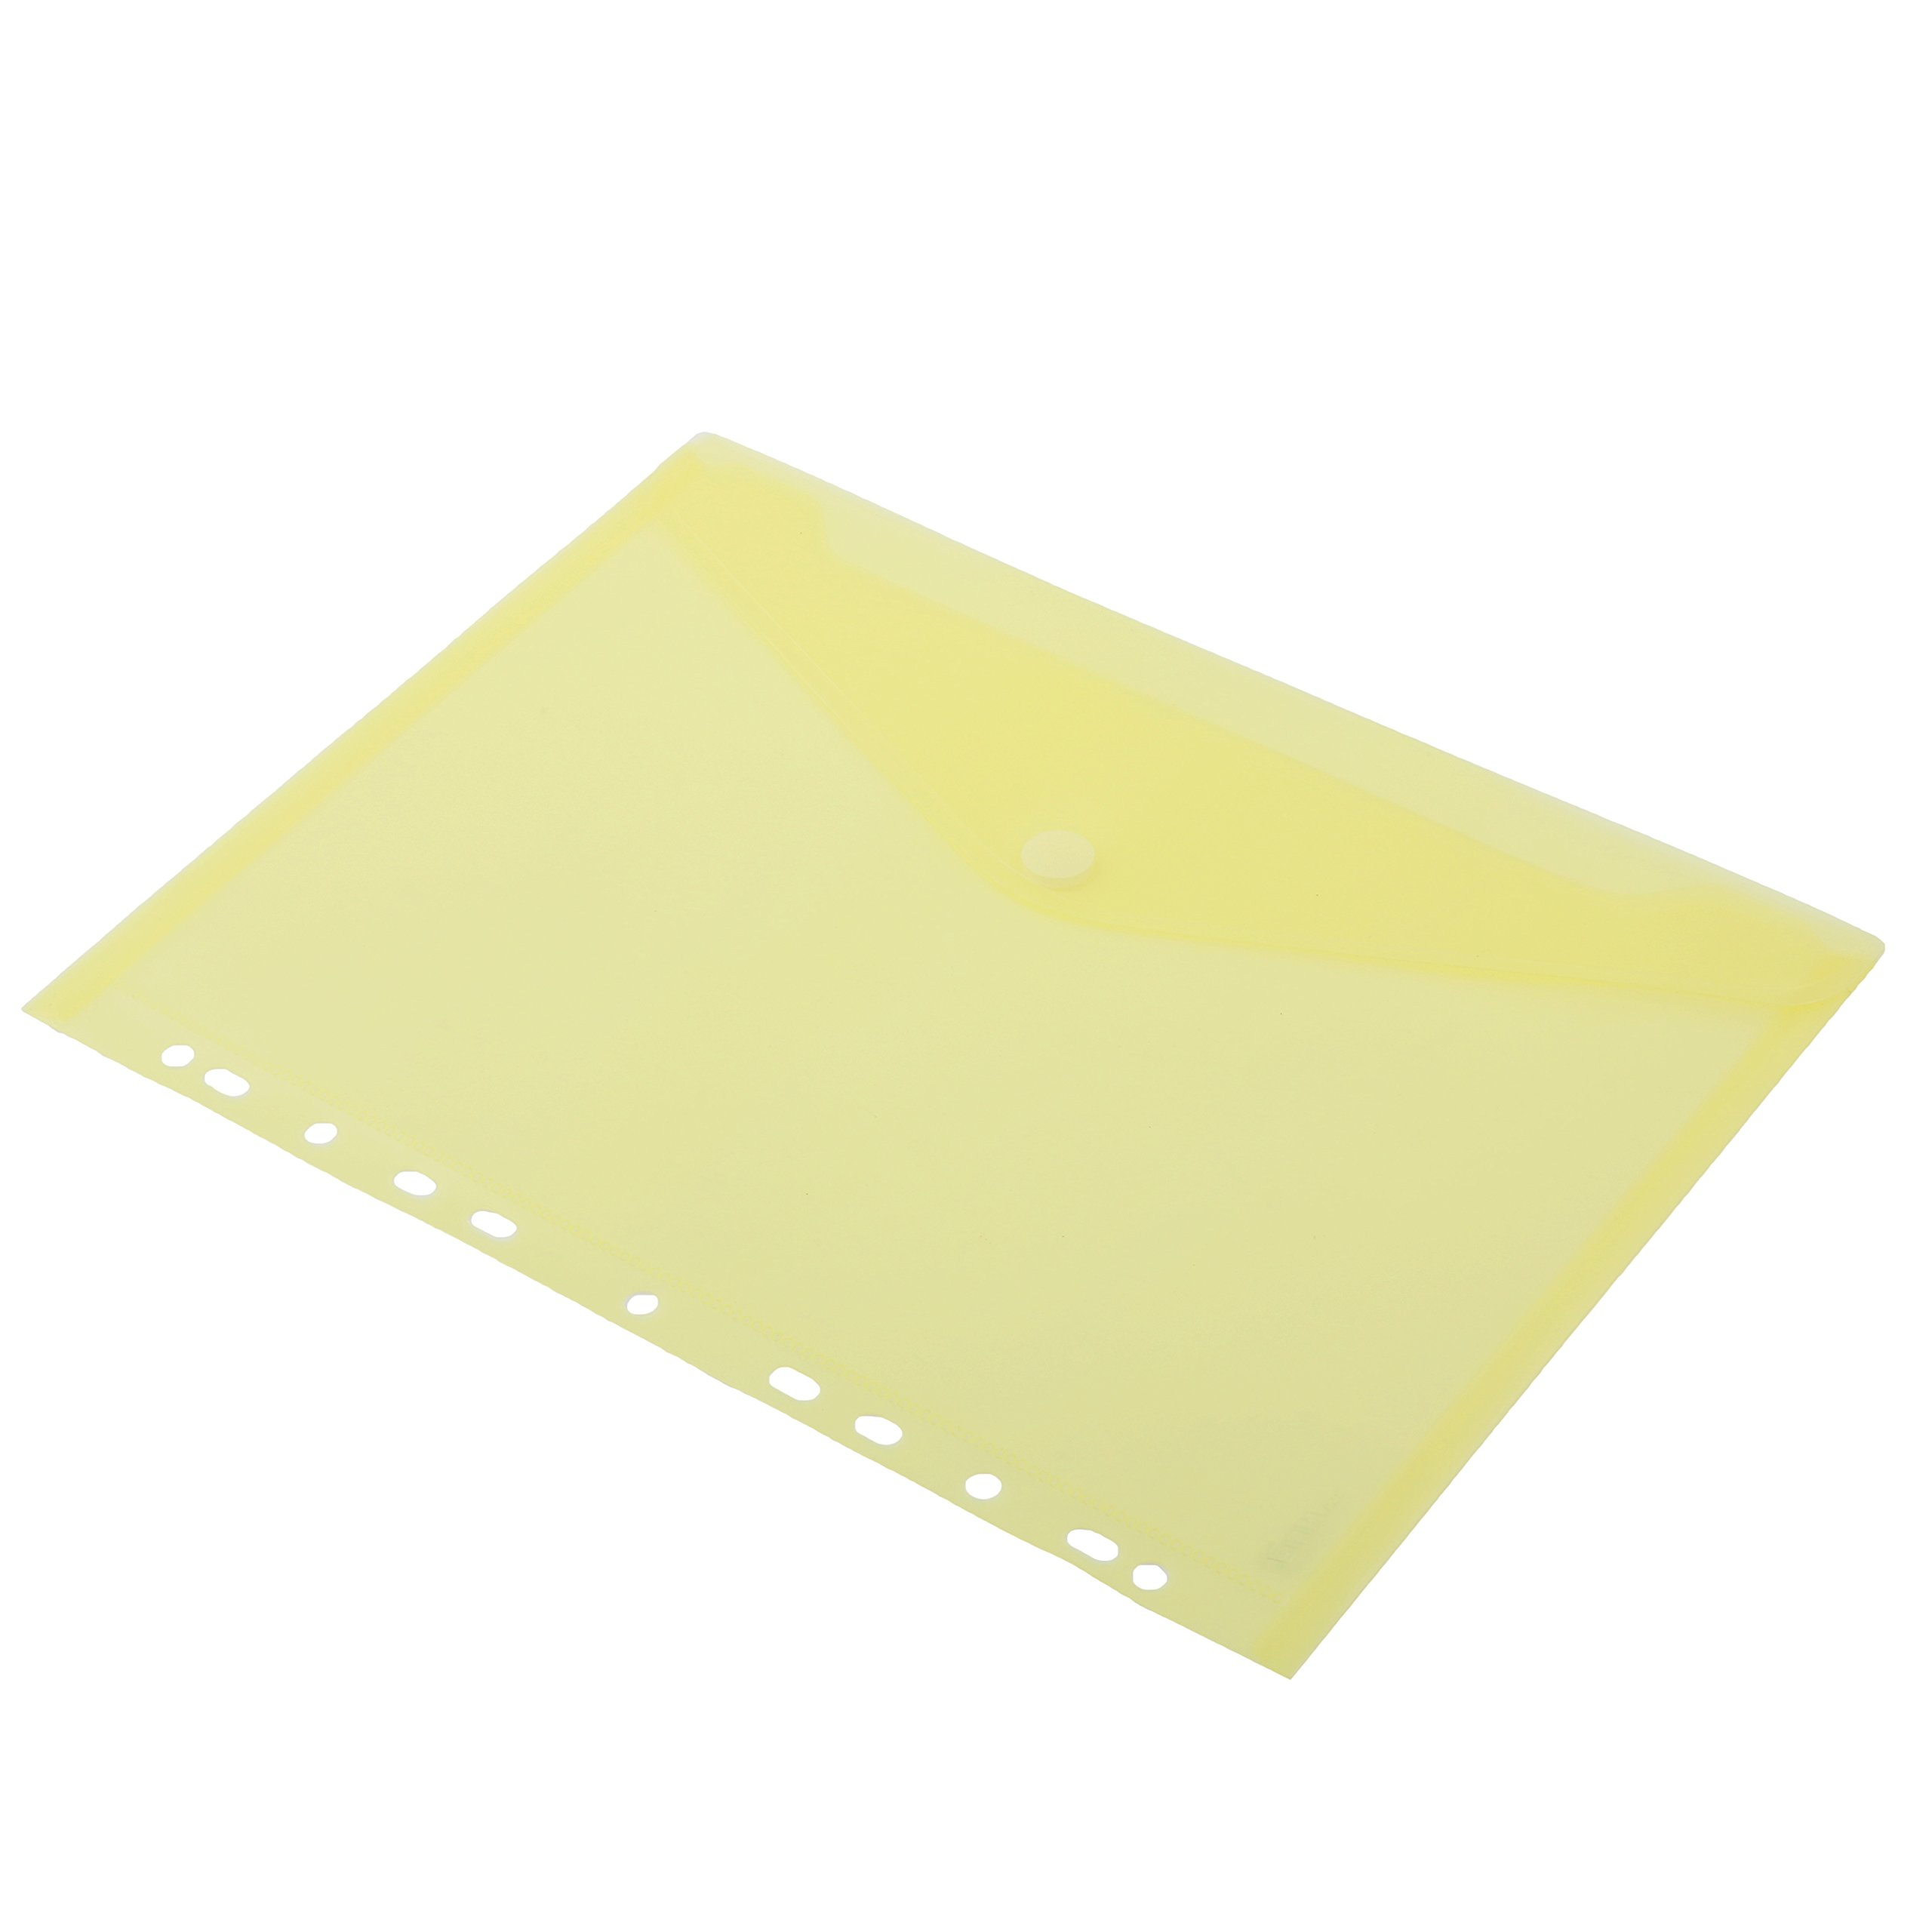 HF2 A4 Transparent Envelope Ring Binder with 11 Holes - Yellow